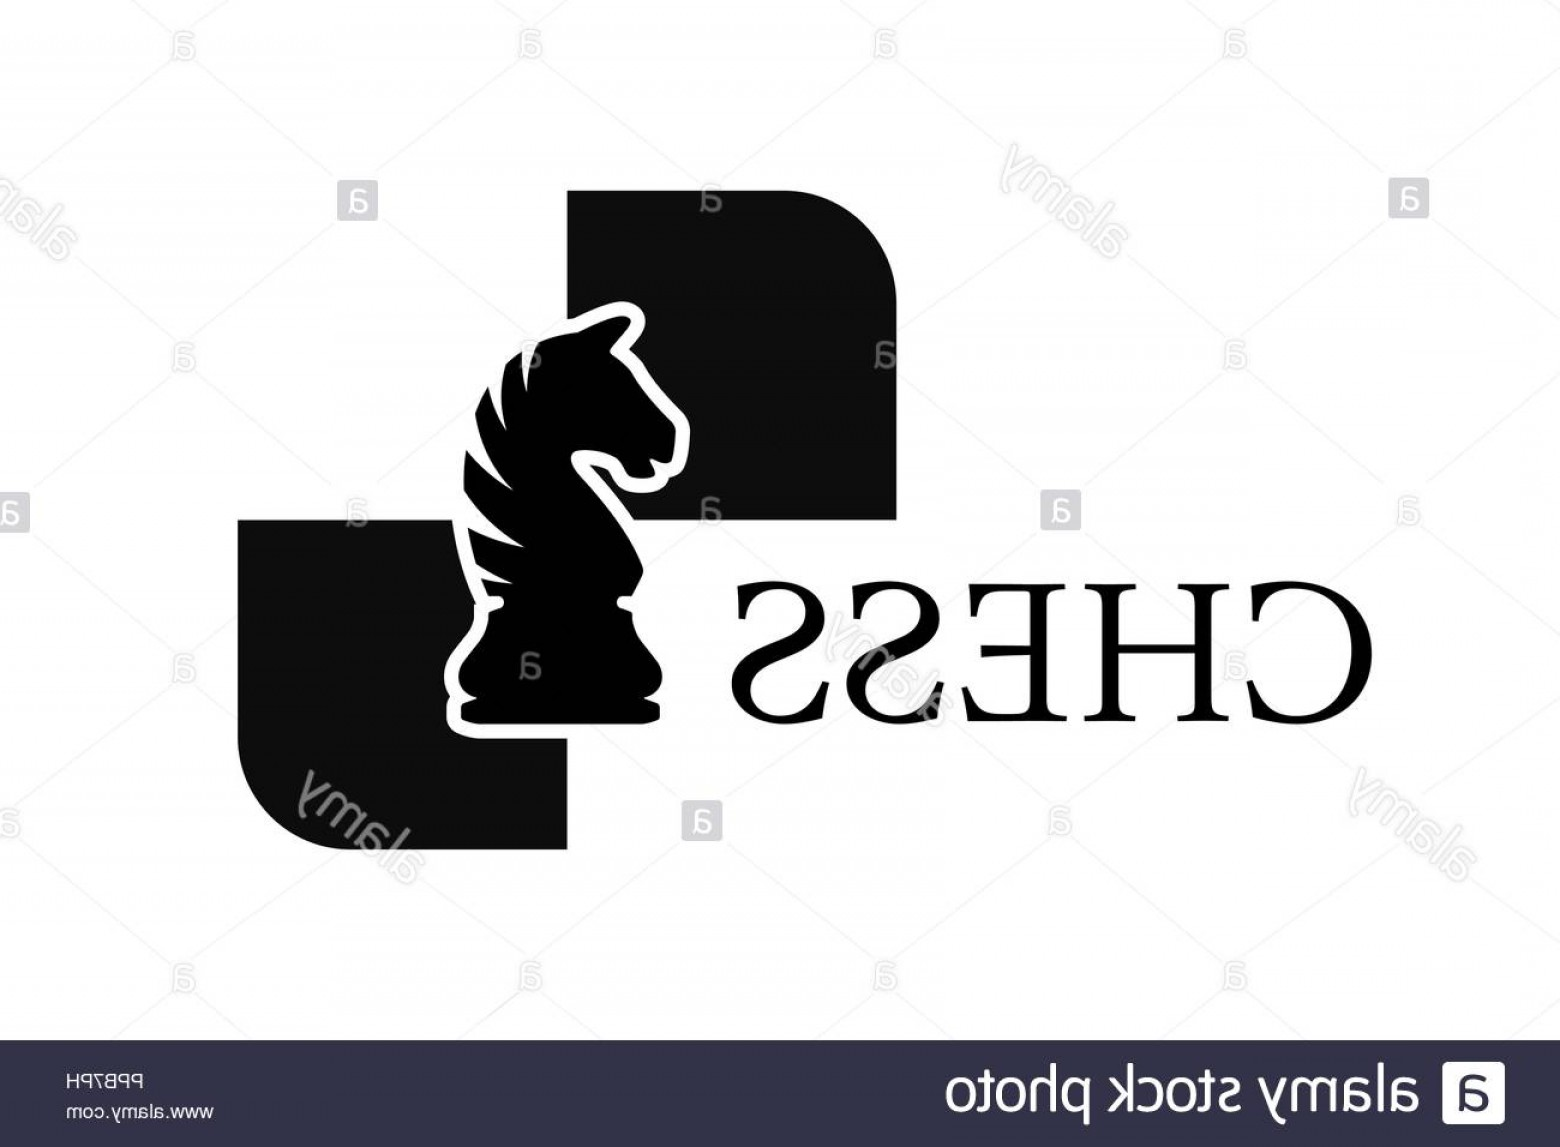 Chess Knight Logo Vector: Chess Knight Vector Logo Isolated On White Background Chess Piece Image